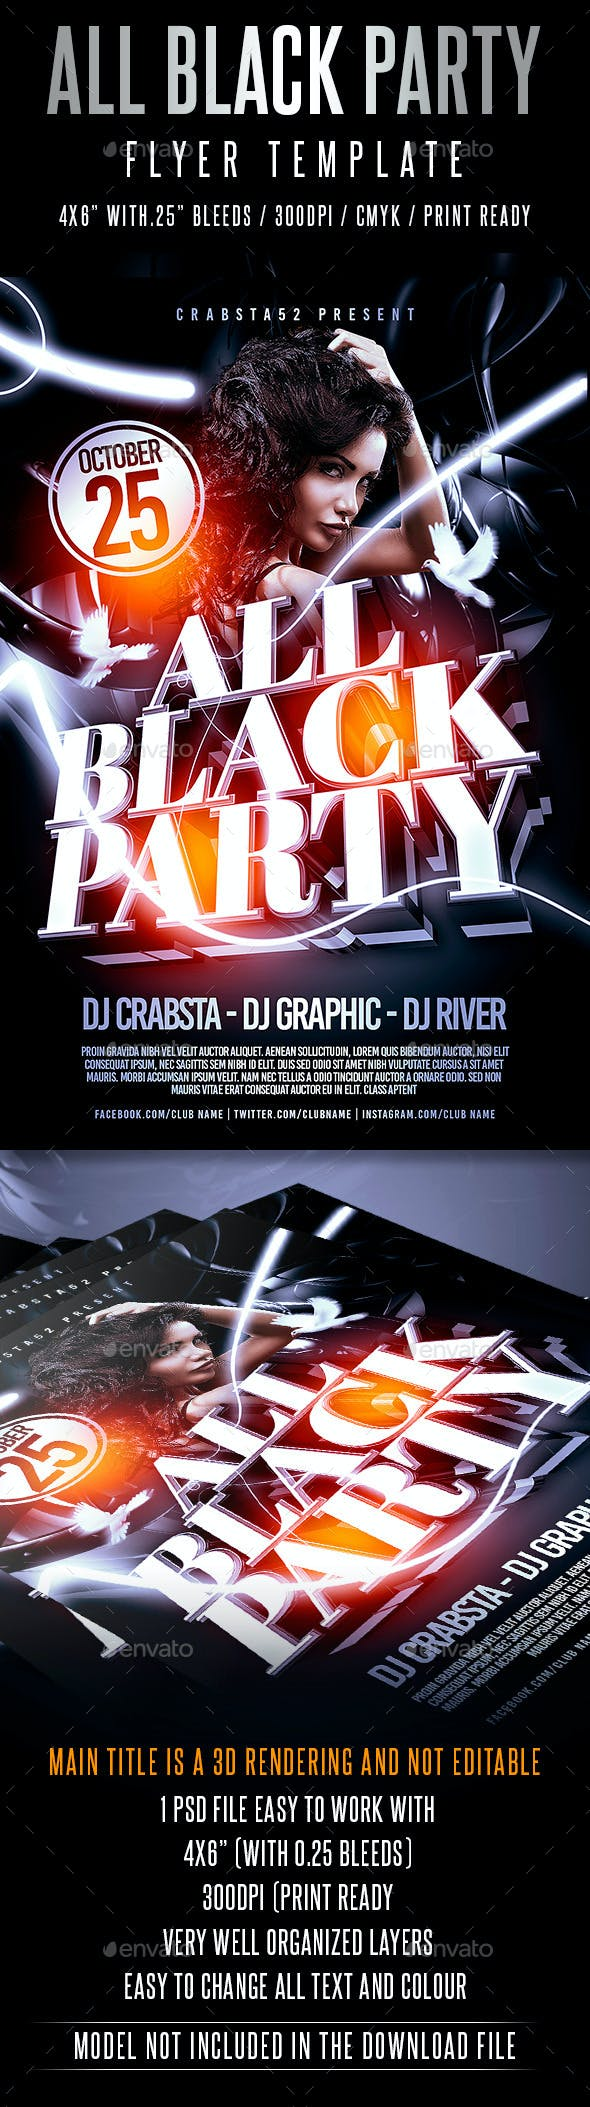 all black party flyer template by crabsta52 graphicriver